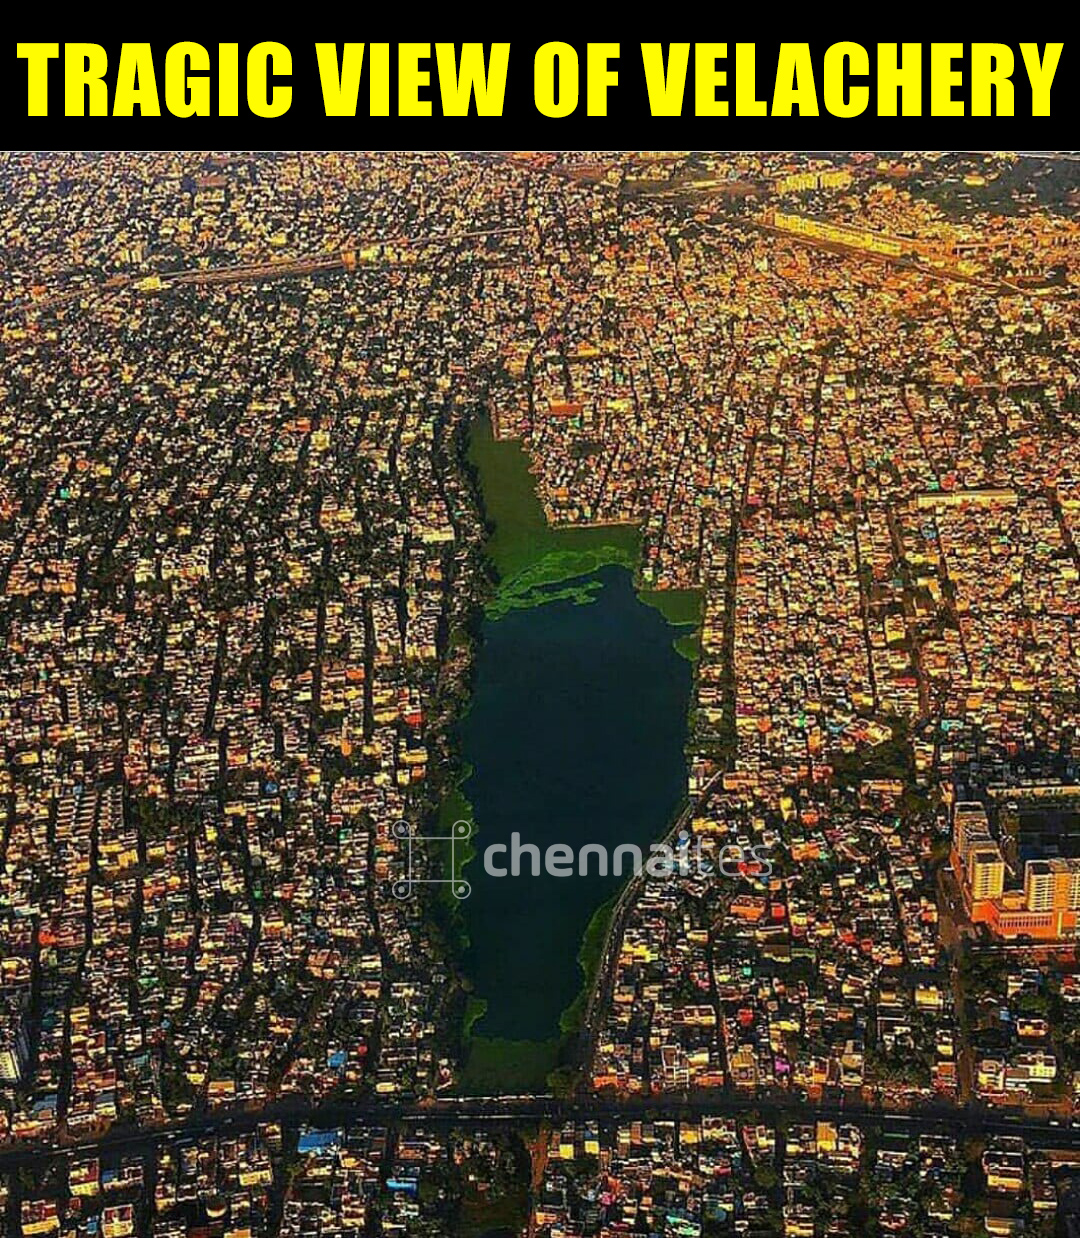 breathtaking view of the Velachery